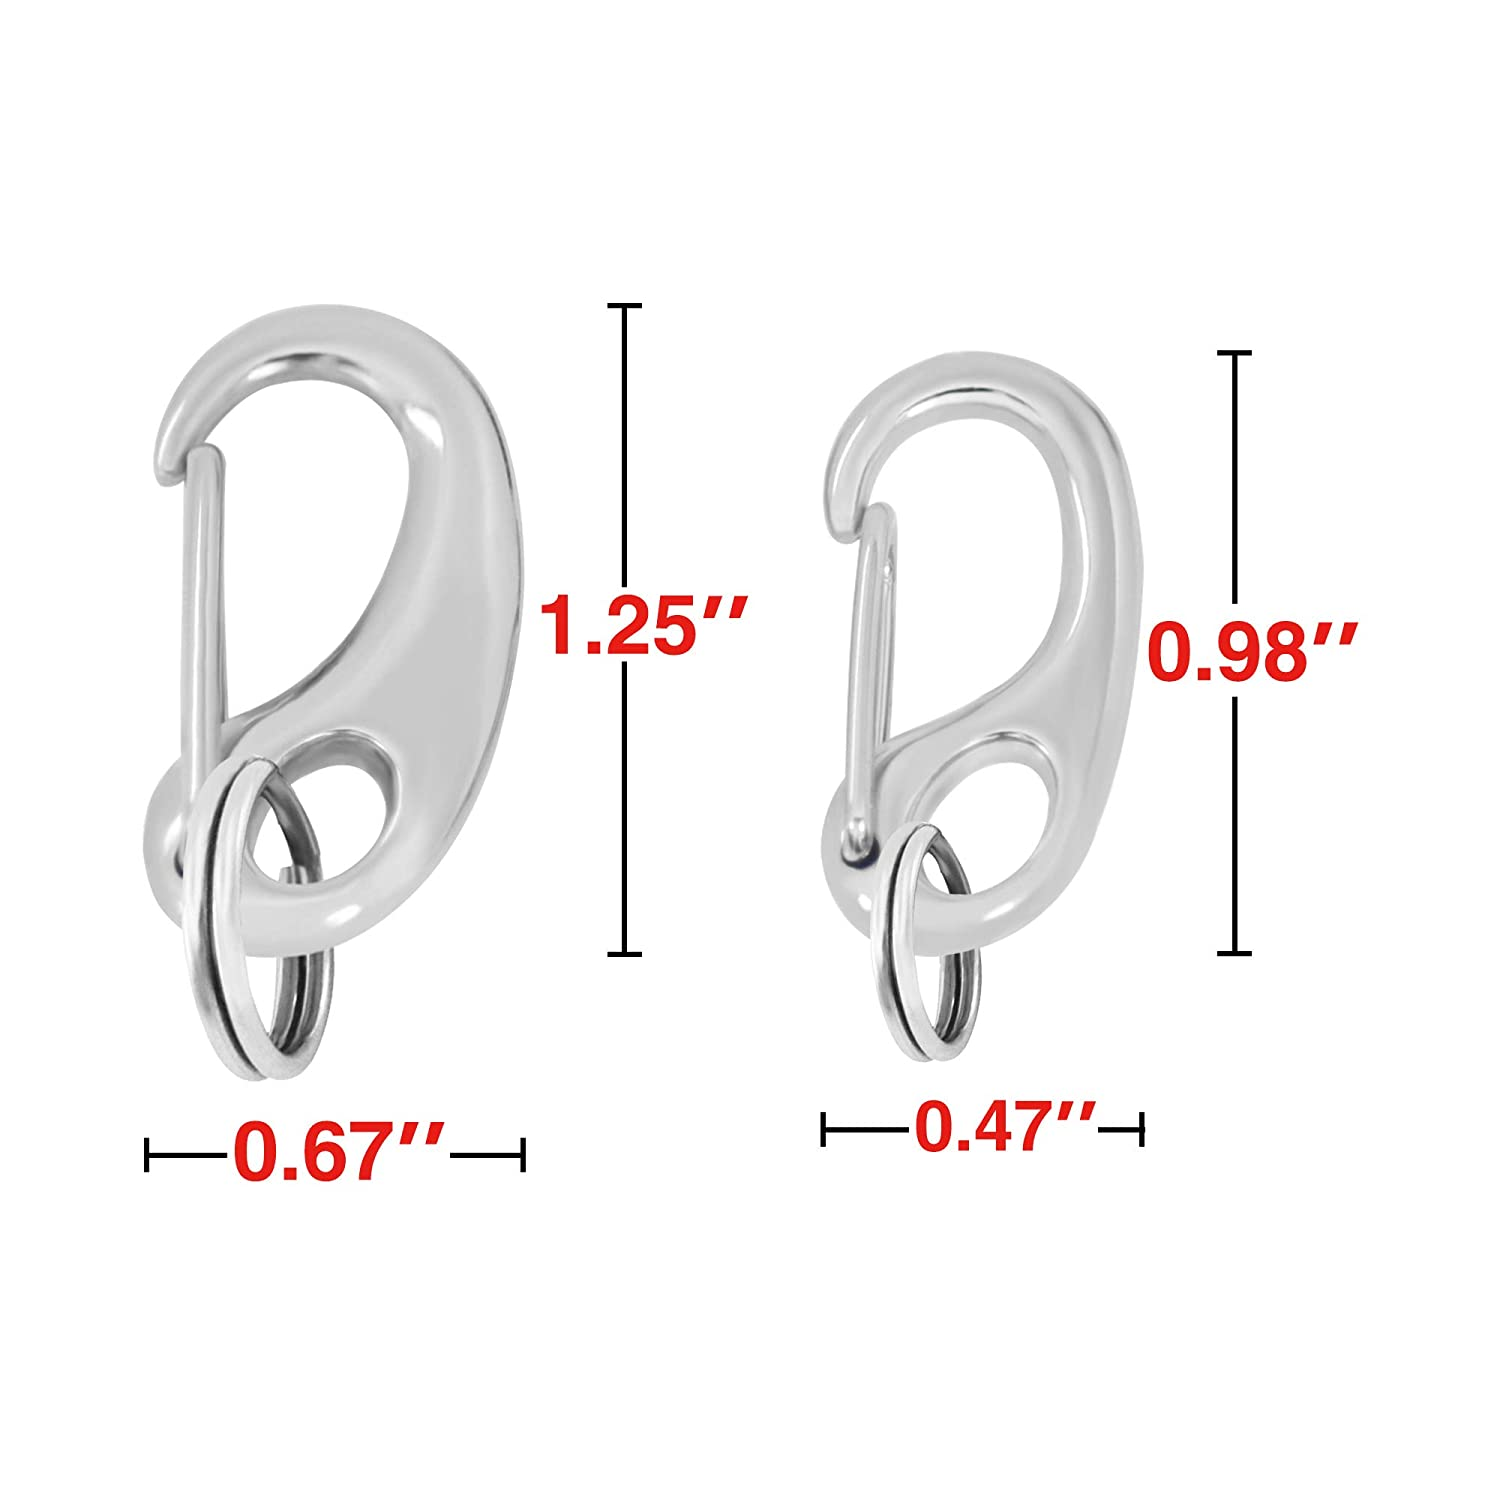 of Standard Quick Clips 2 pcs Divoti Dog Tag//Pet ID Tag w//Pet Tag Quick Clip Combos- 1 Pair Entirely sugrical Stainless Steel